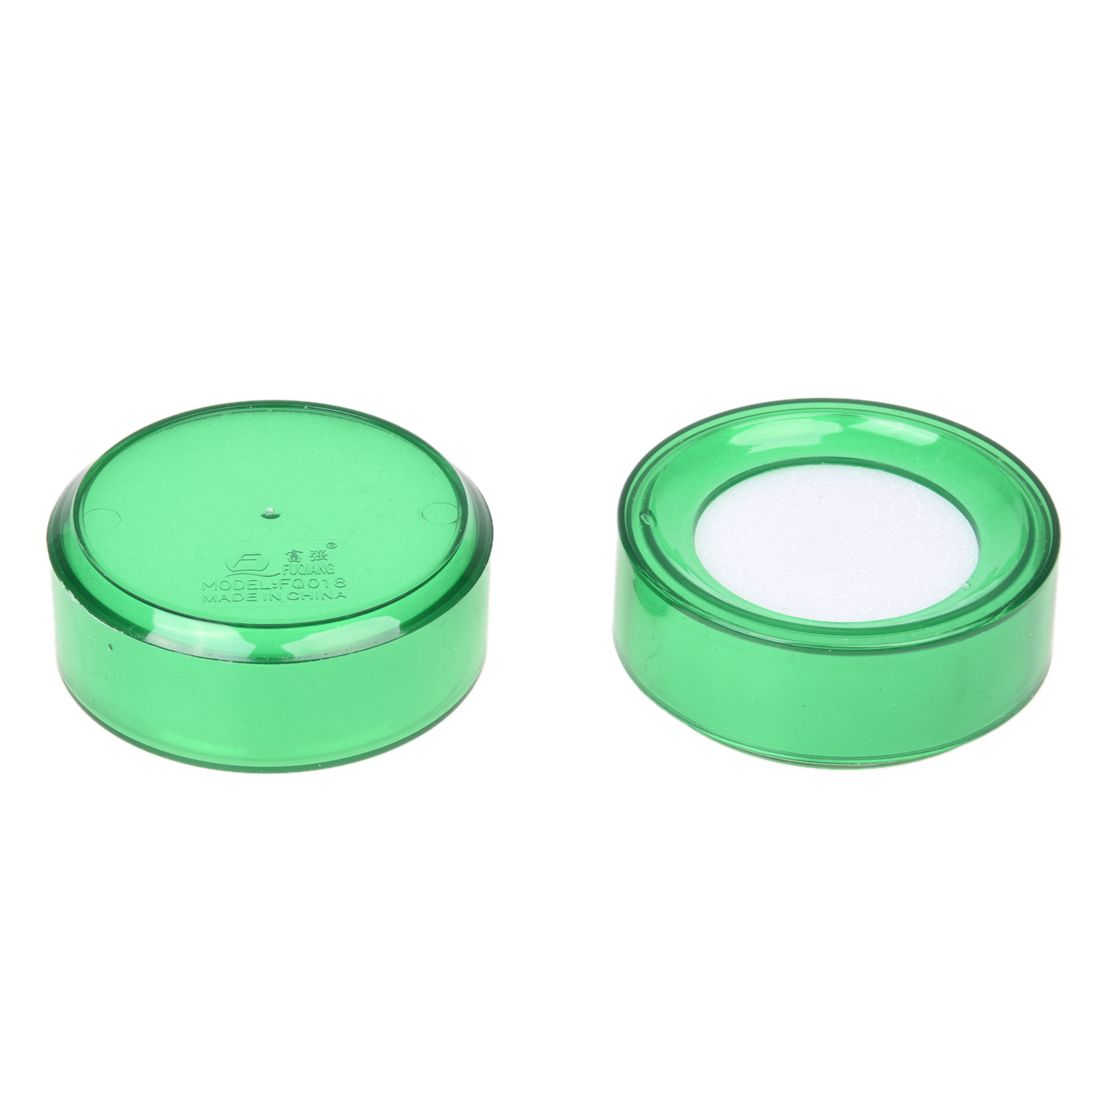 HOT GCZW- Green Plastic 7cm Dia Sponge Finger Wet Money Cashier 2 Pcs